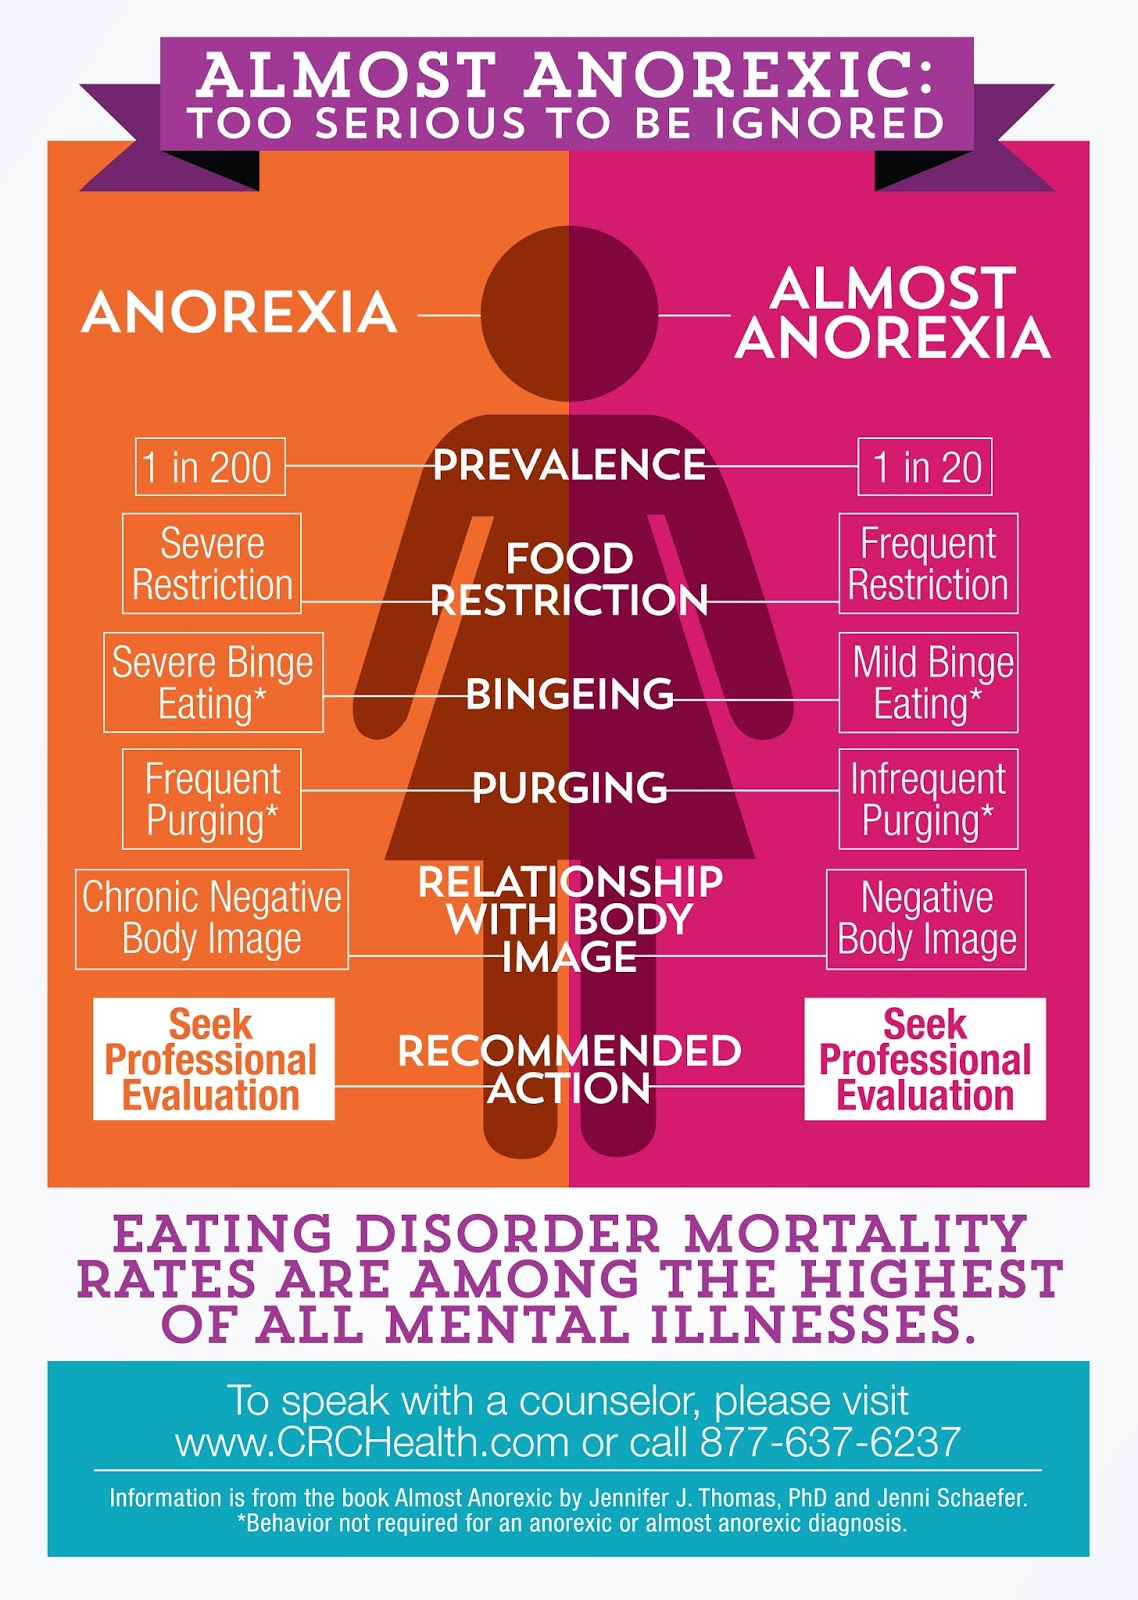 Anorexia Quotes Fighting Anorexia Get Help Before Its Too Late